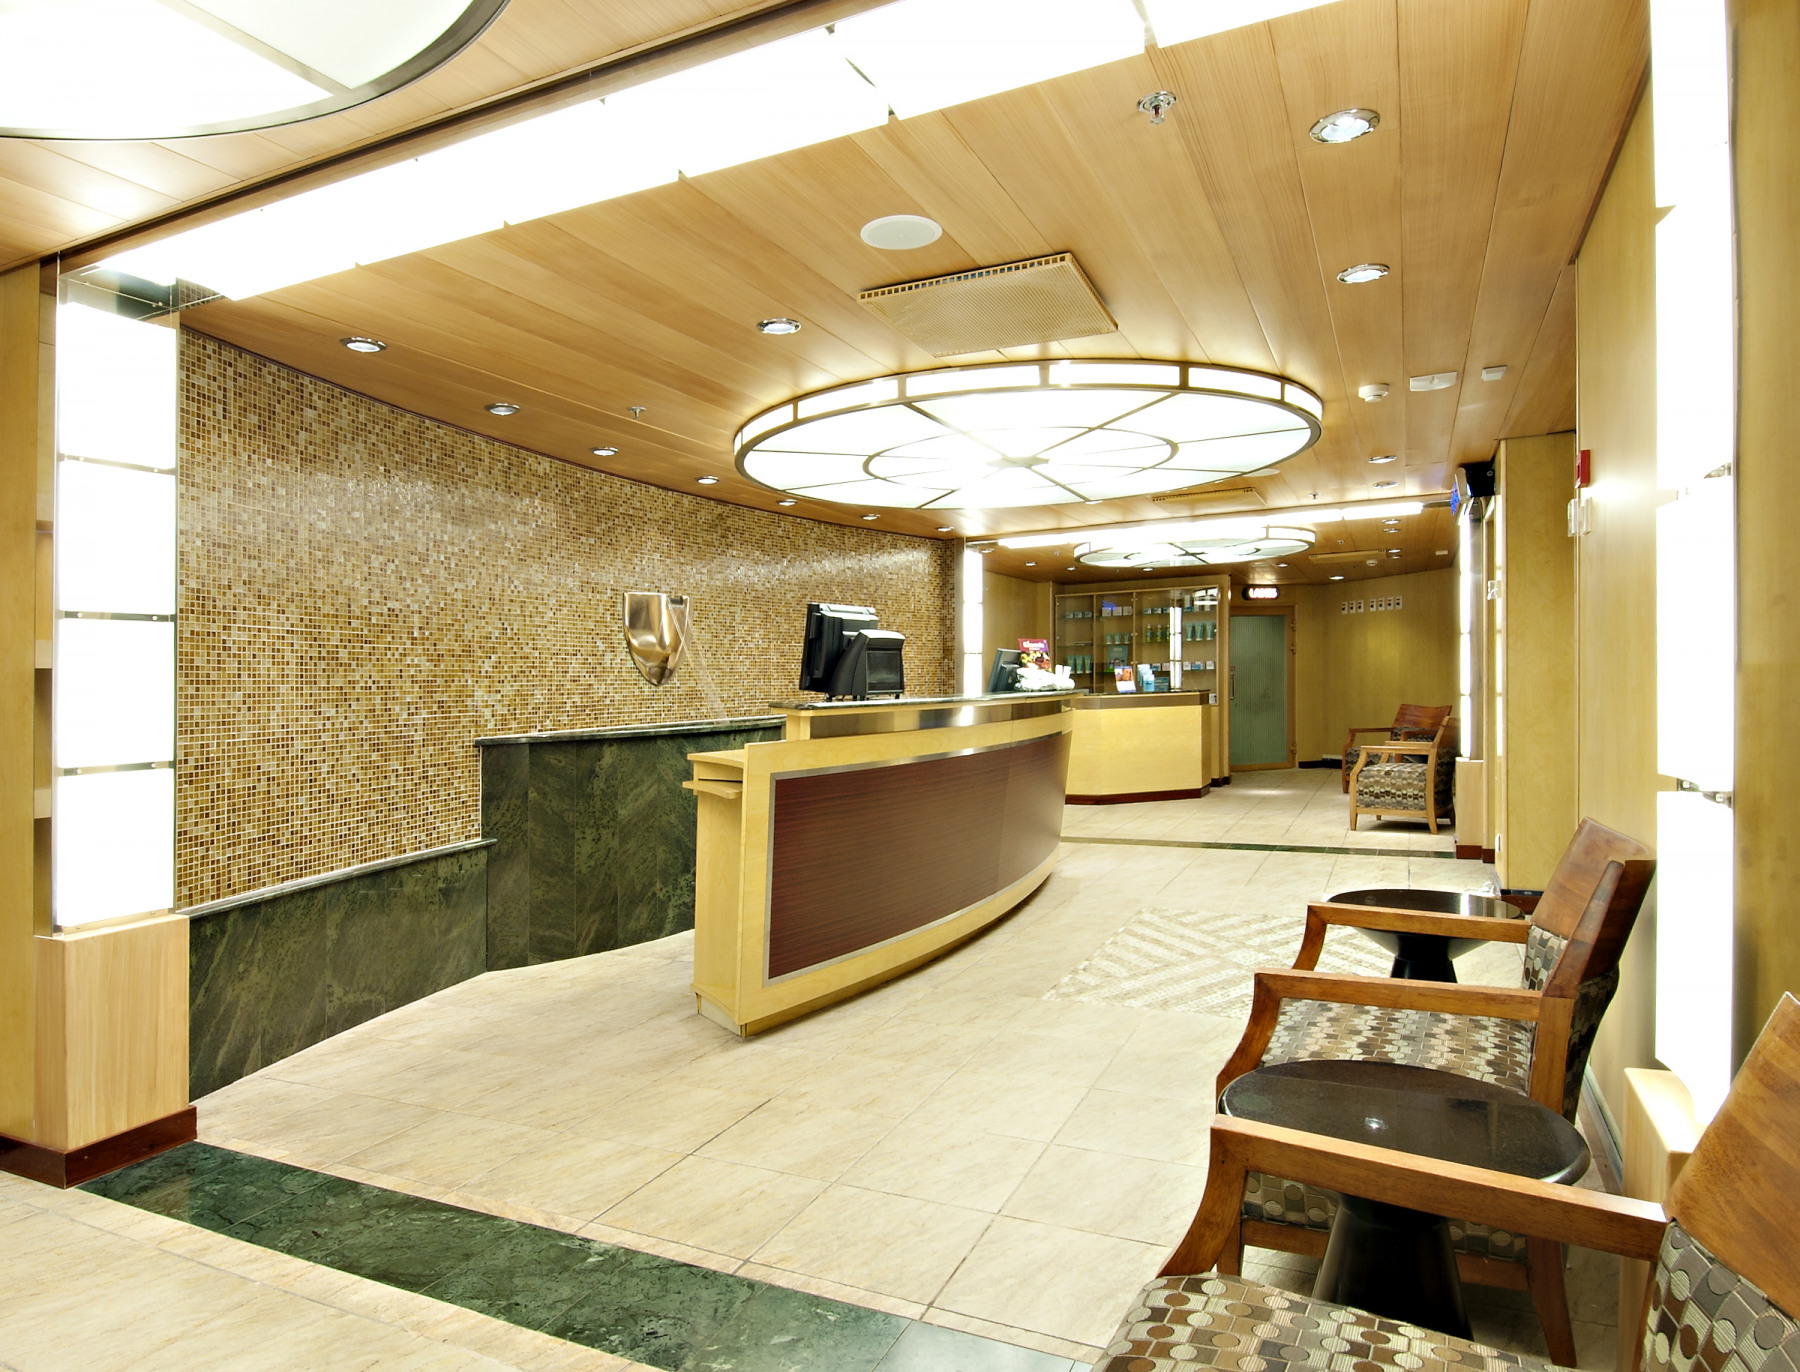 Carnival Sensation Spa Reception Area 2.jpg